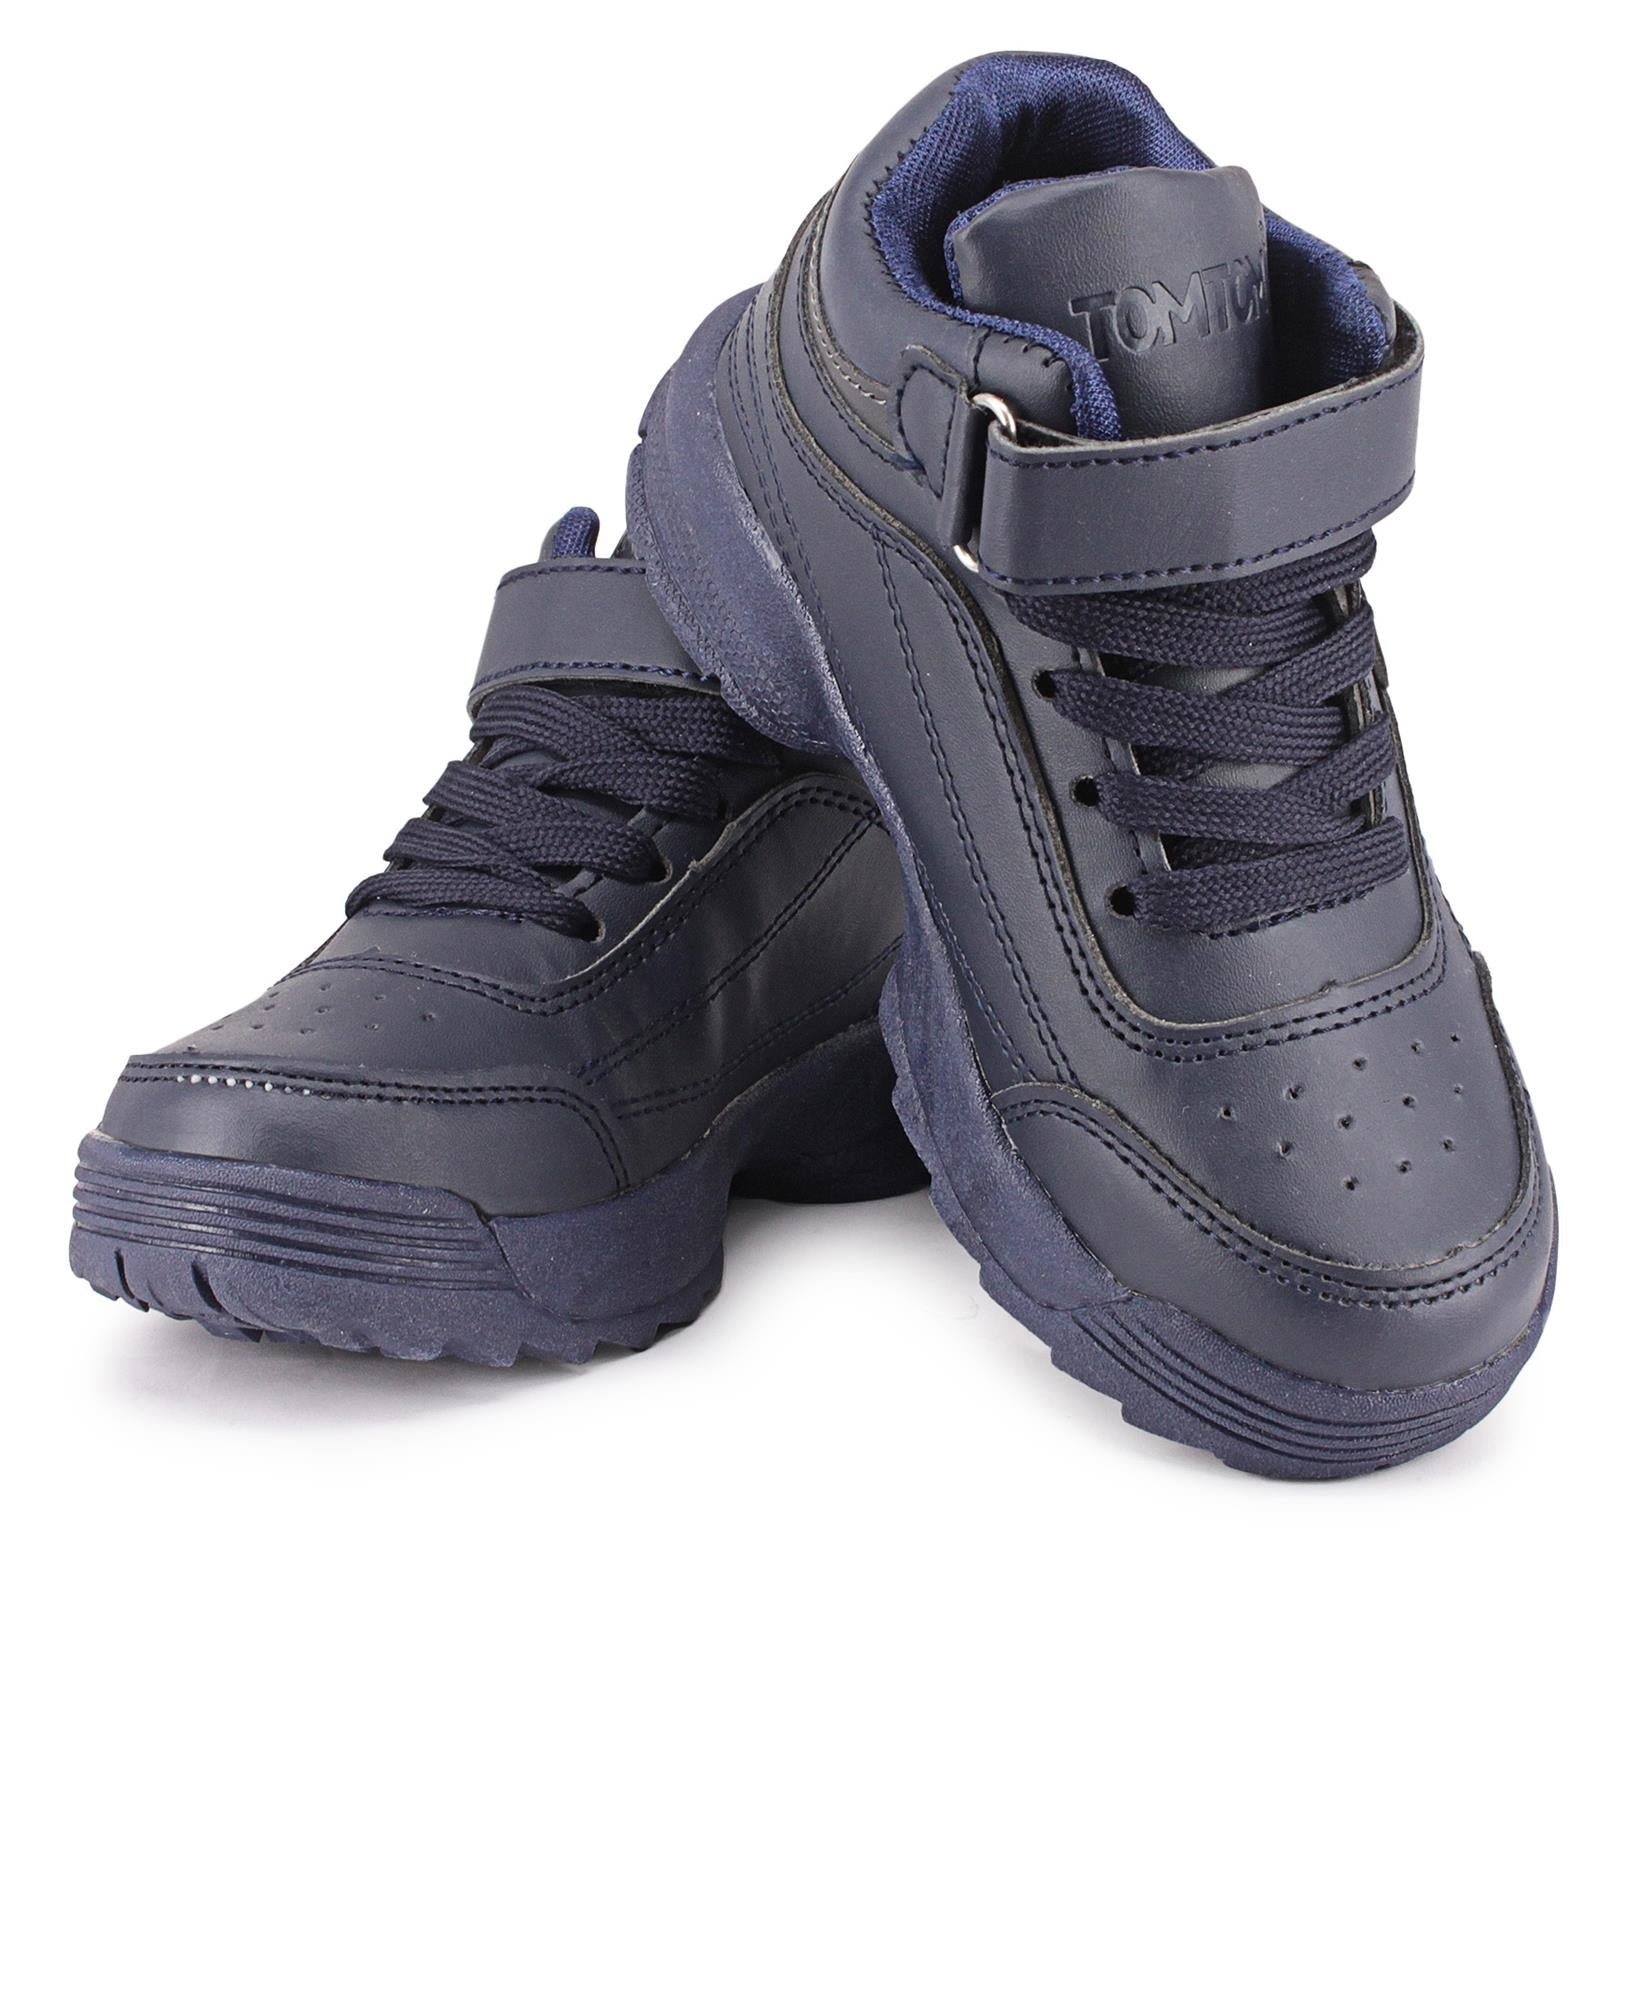 Kids Boot - Navy